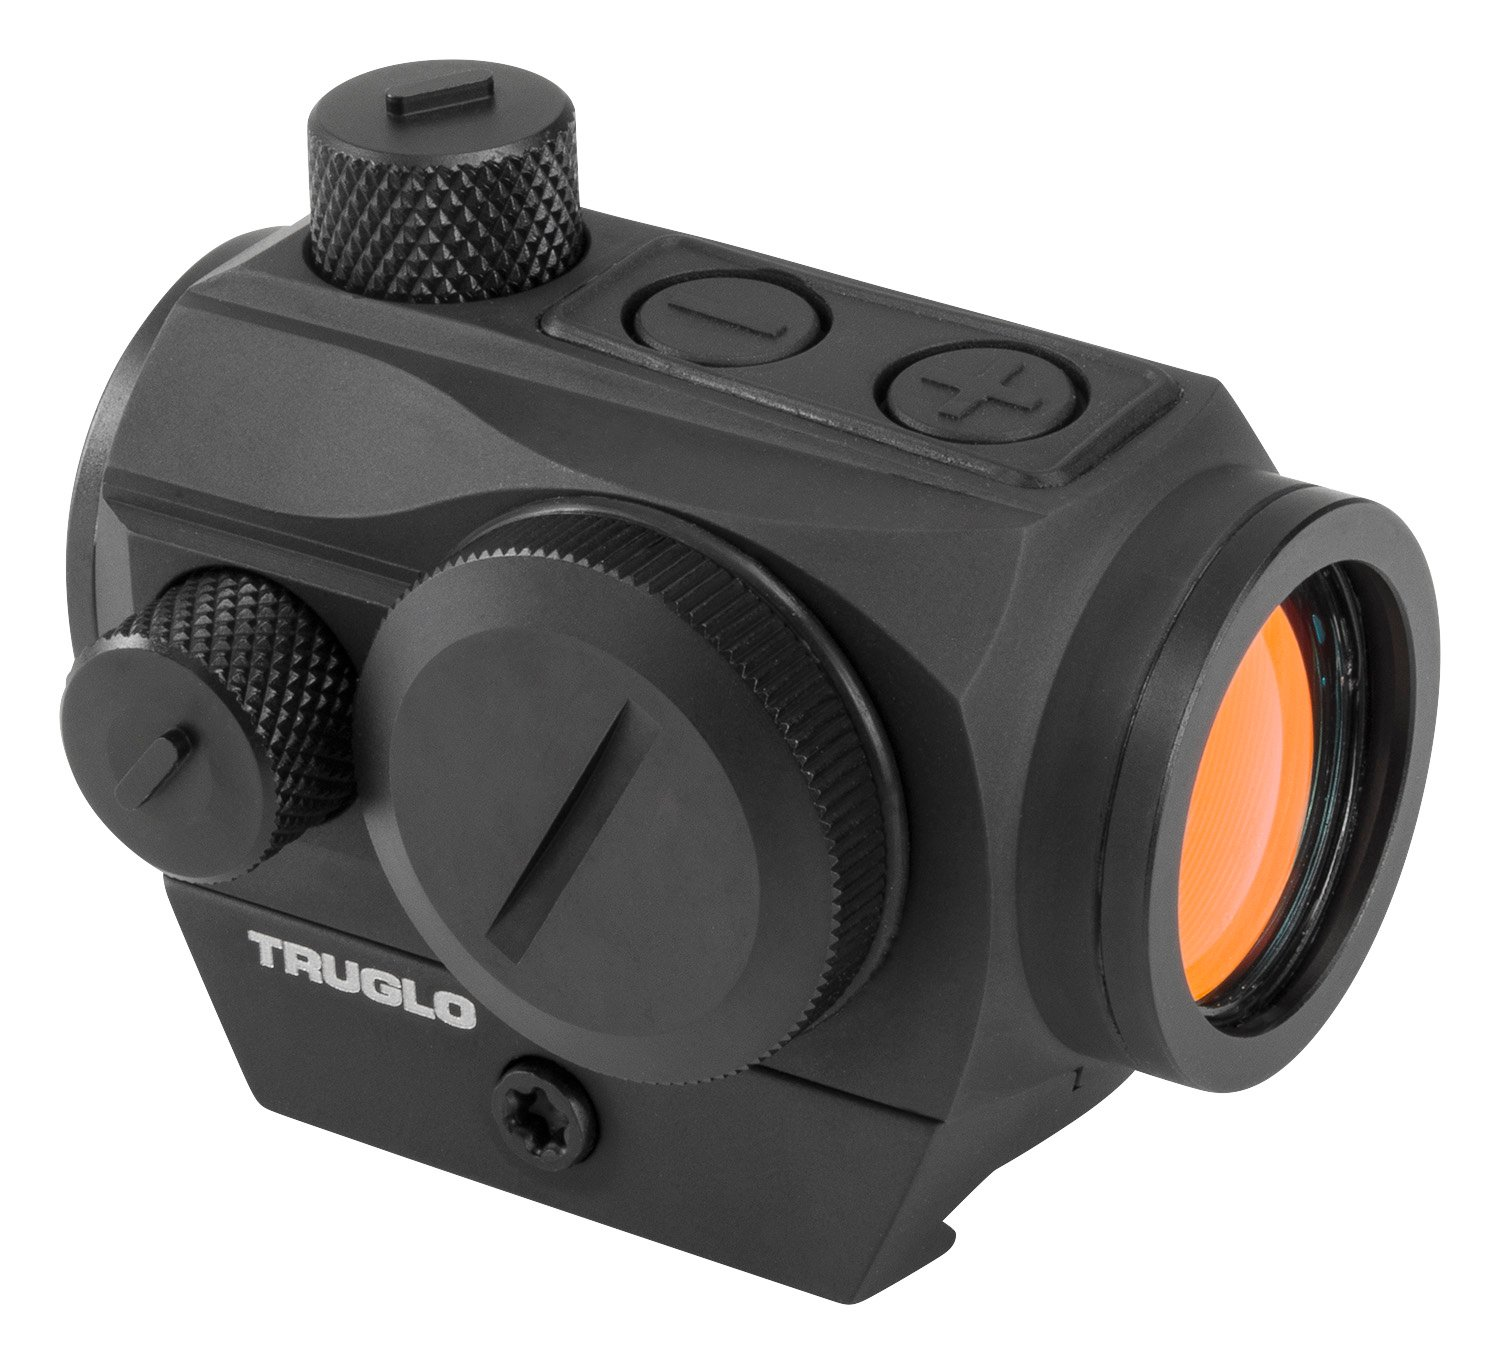 TruGlo Introduces 20mm Tactical Red Dot Optic